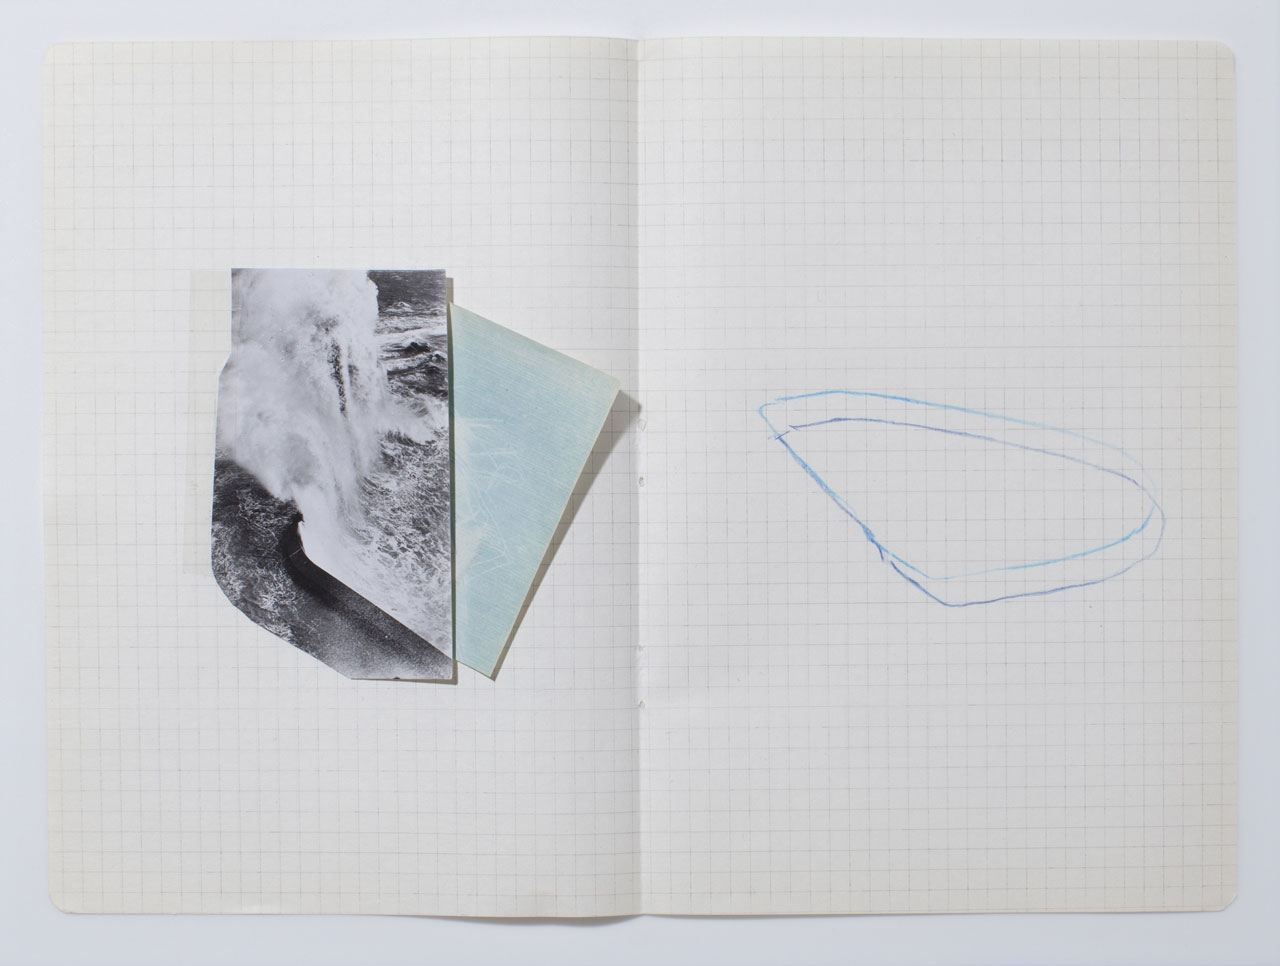 Harar Waheed, 'KH-21', Notes 26/32, 2014, Cut Photograph, Pencil on Paper. Image courtesy the artist.